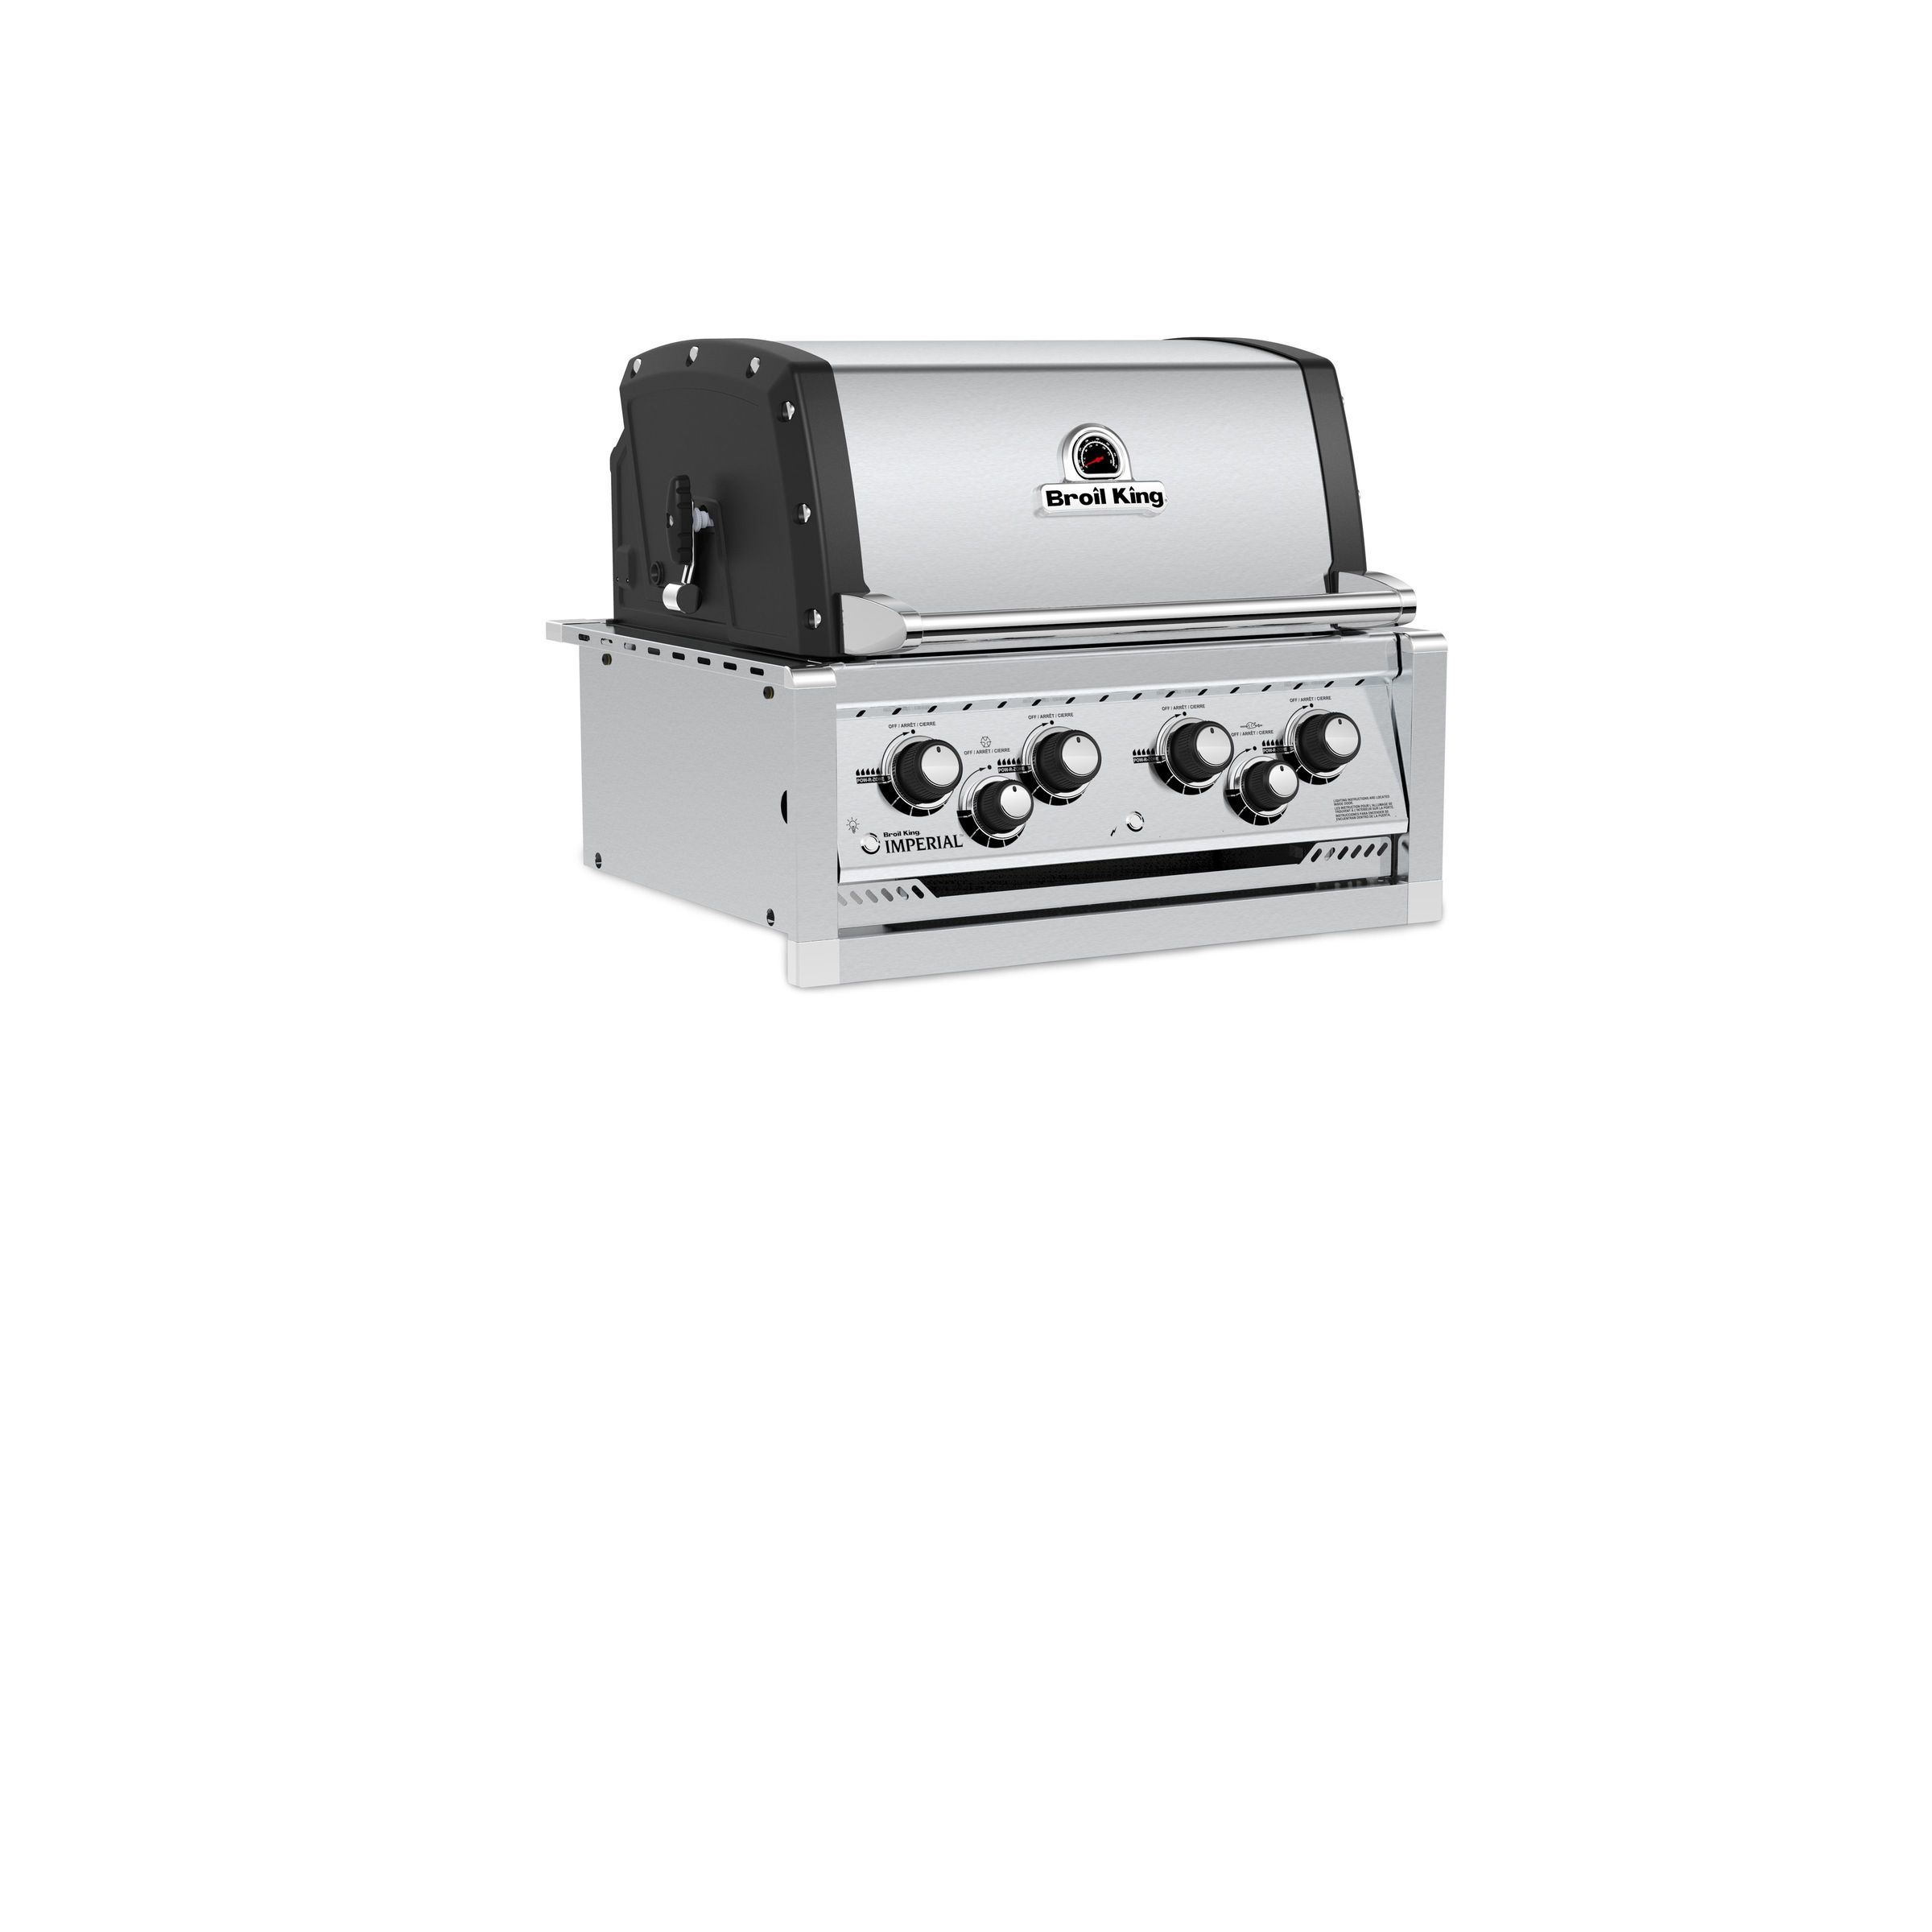 Broil King Imperial 490 Pro - Built-In Head